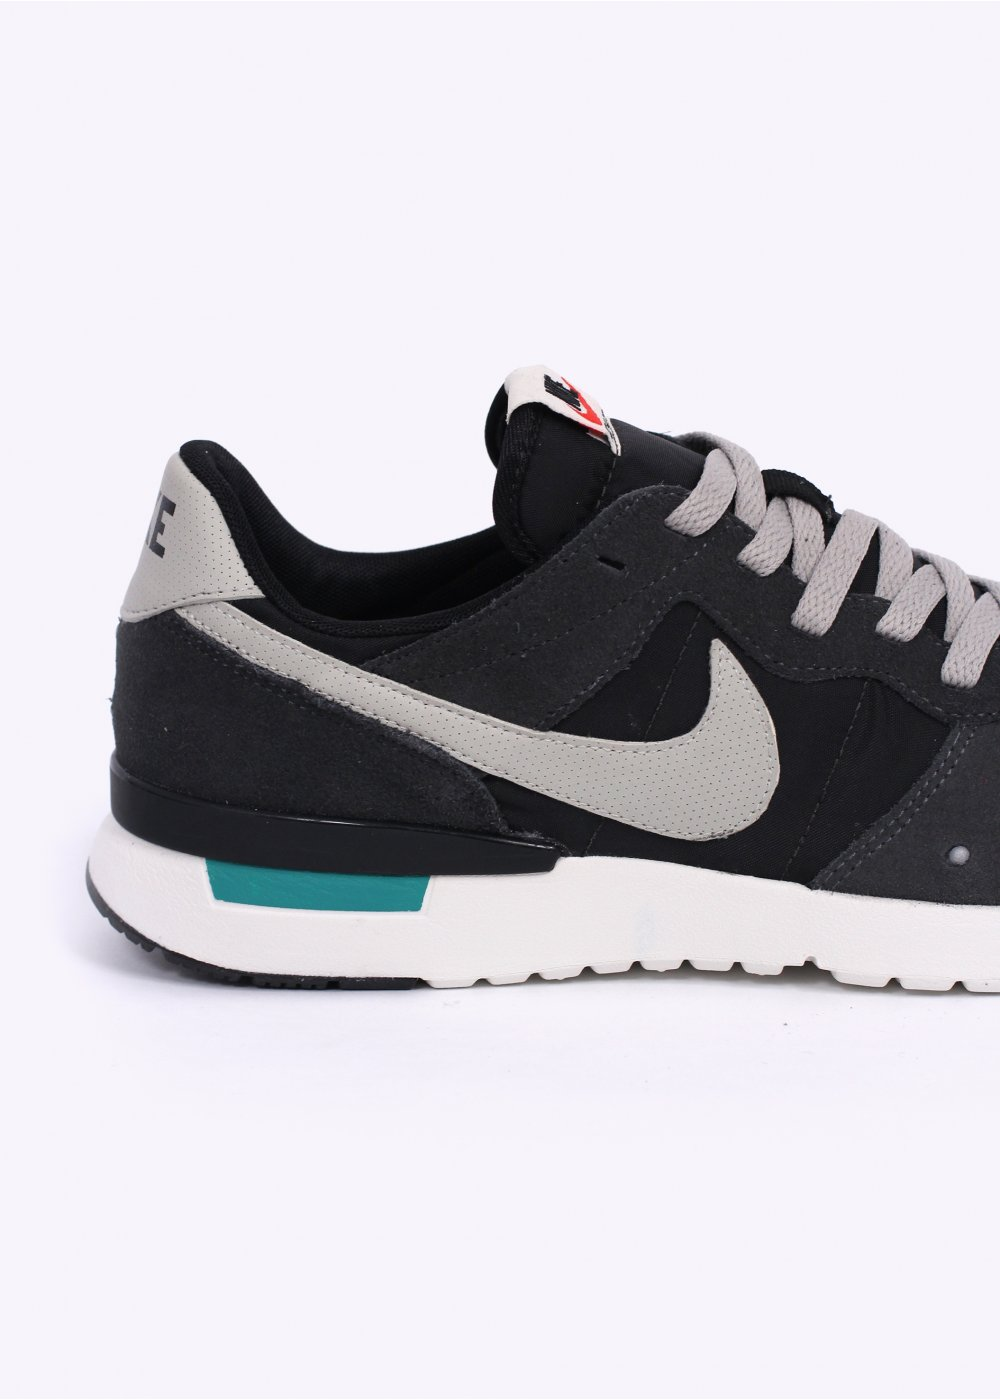 info for 6a670 c2bd4 Nike Archive Shoes Anthracite Black